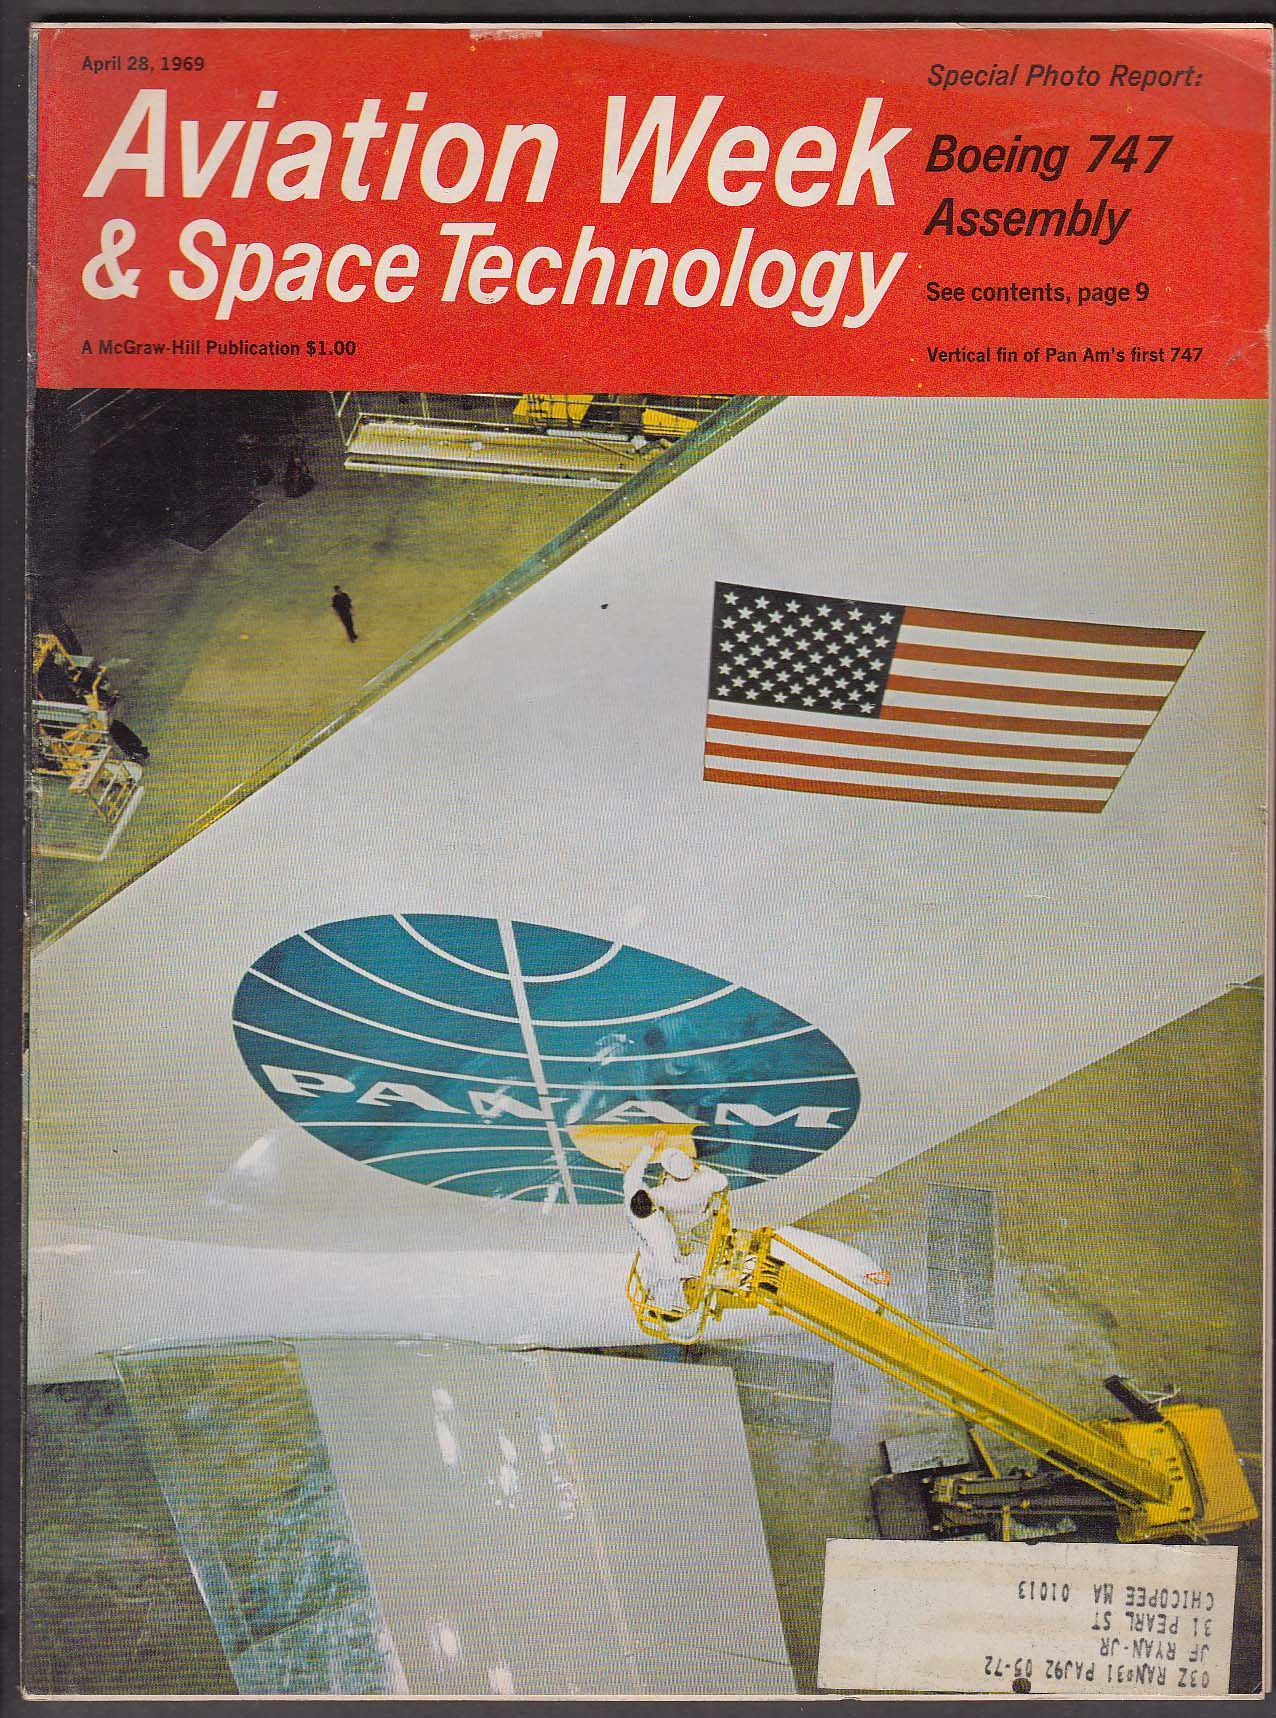 Image for AVIATION WEEK & Space Technology Boeing 747 Assembly Apollo Lockheed + 4/28 1969